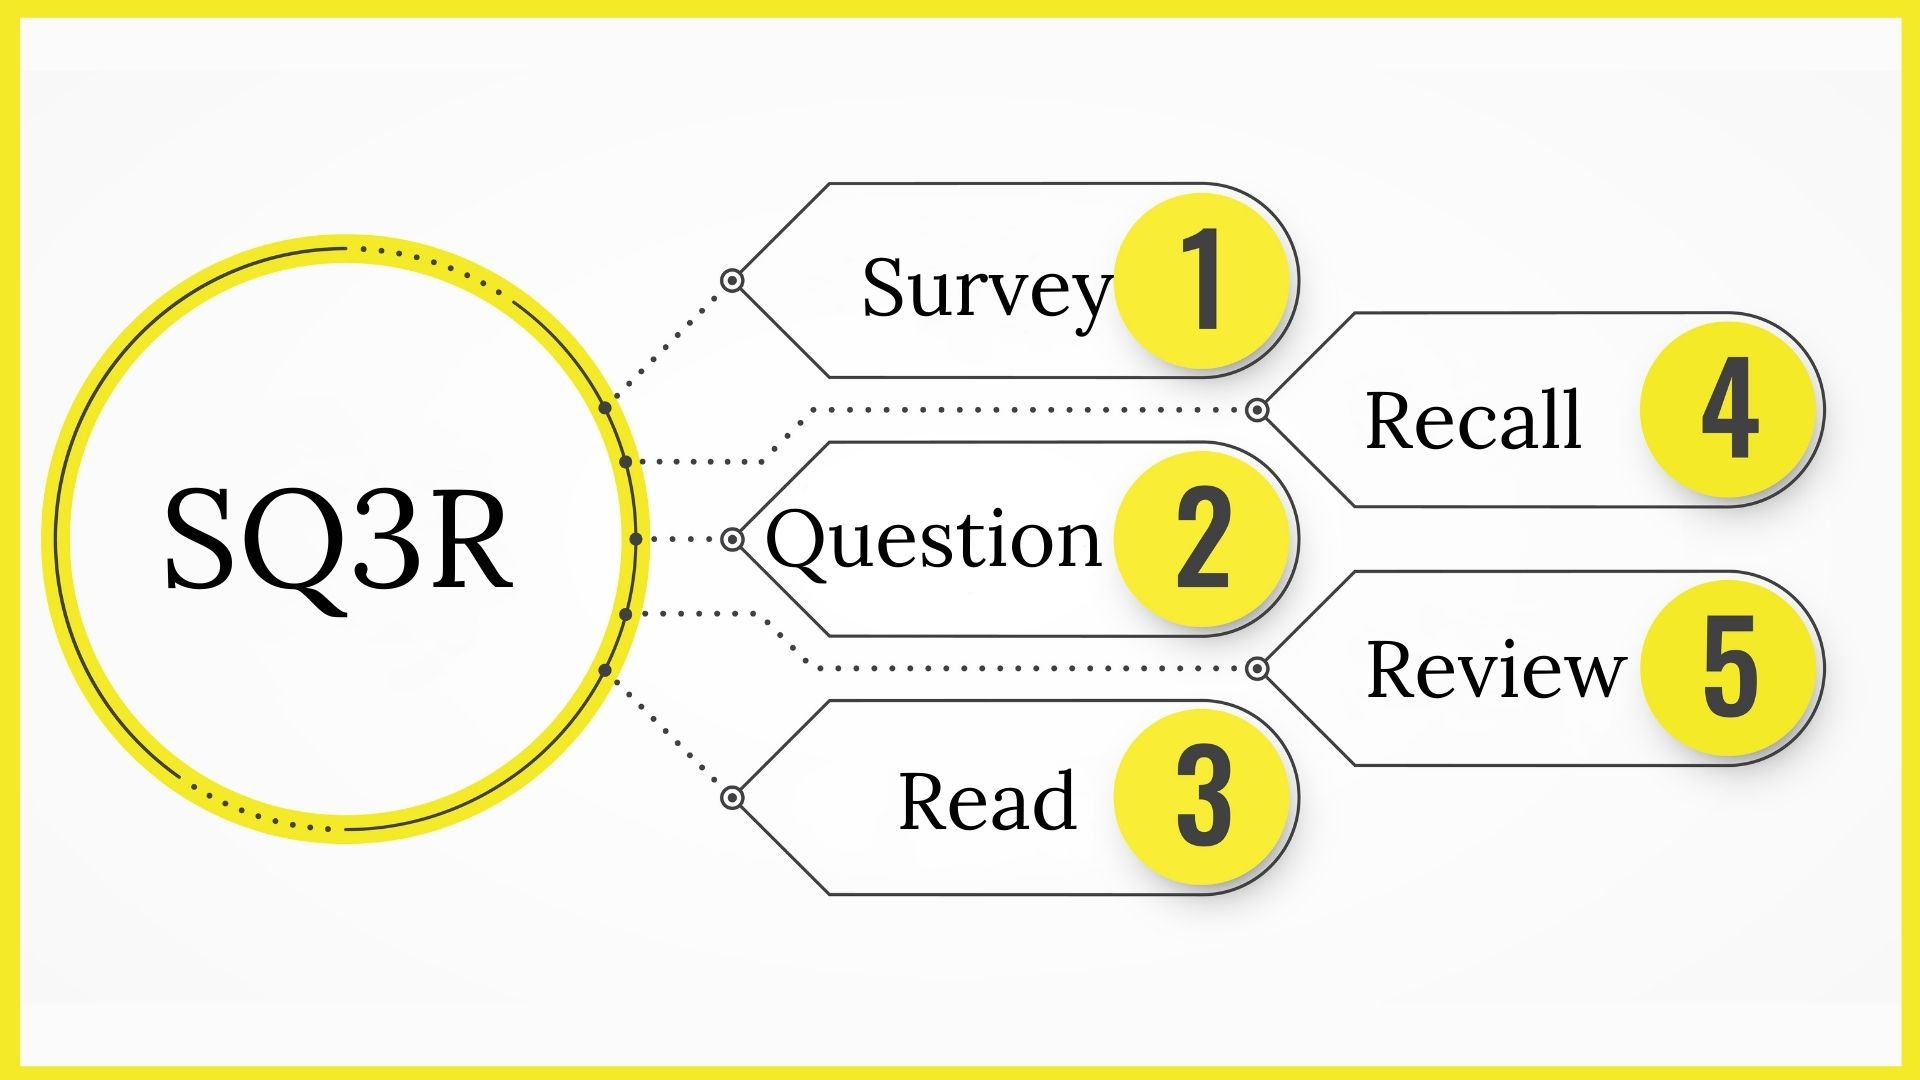 What are the steps involved in SQ3R